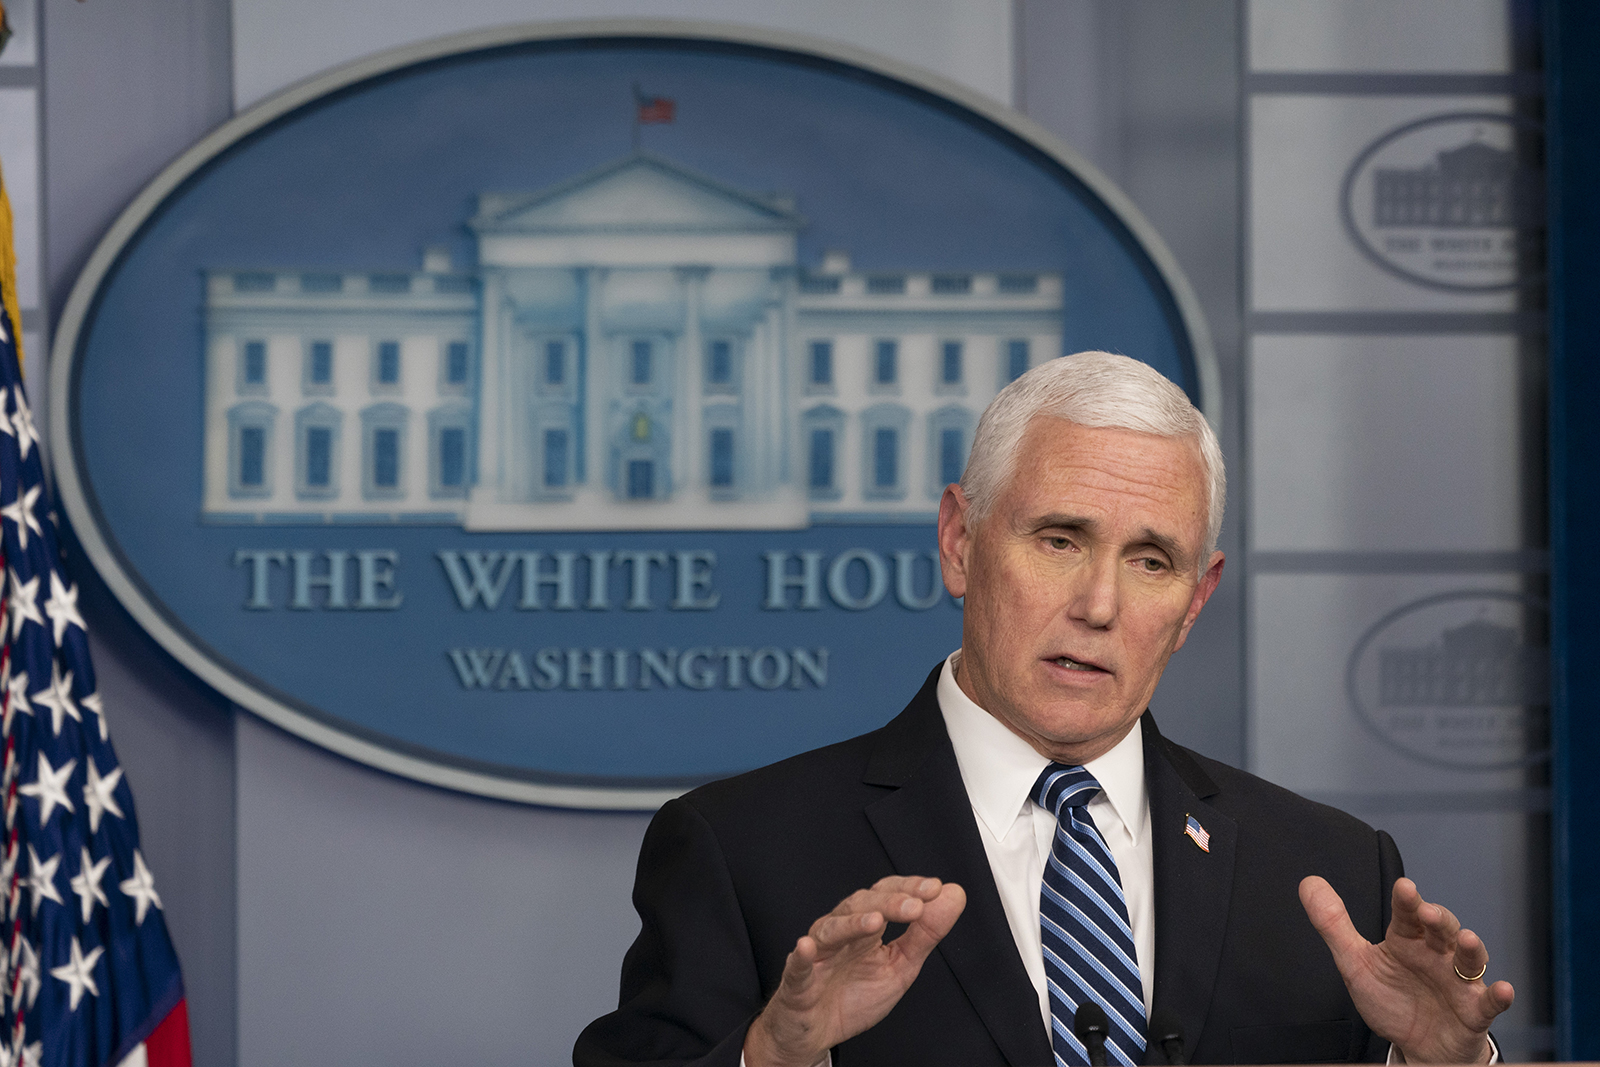 Vice President Mike Pence speaks during a news conference in the White House in Washington, on April 24.